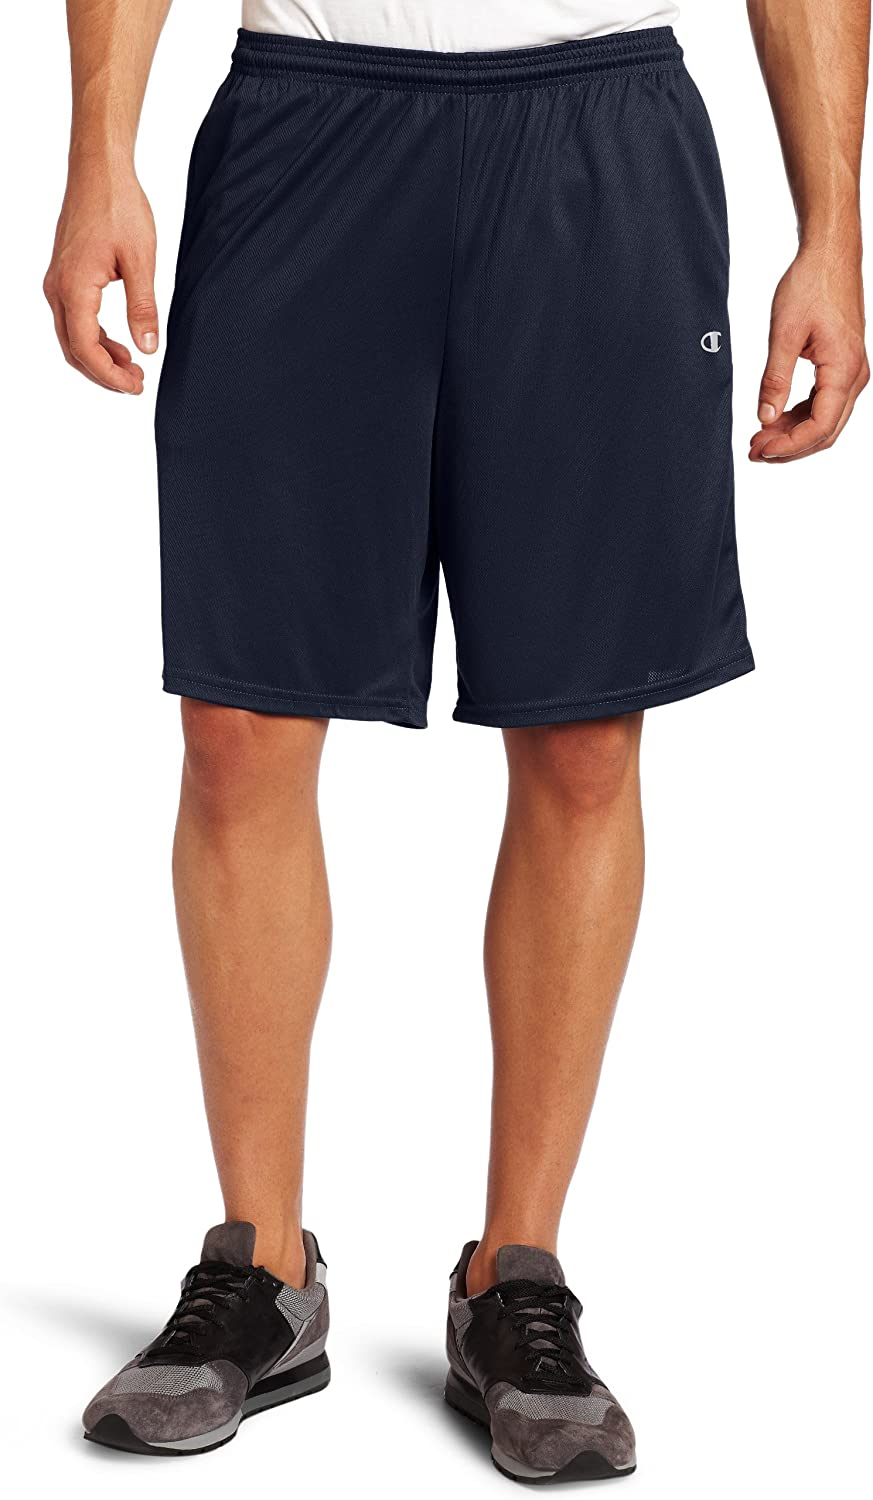 """Champion Men/'s Gym Issue Shorts Workout w Pockets 9/"""" Inseam Double Dry Wicking"""